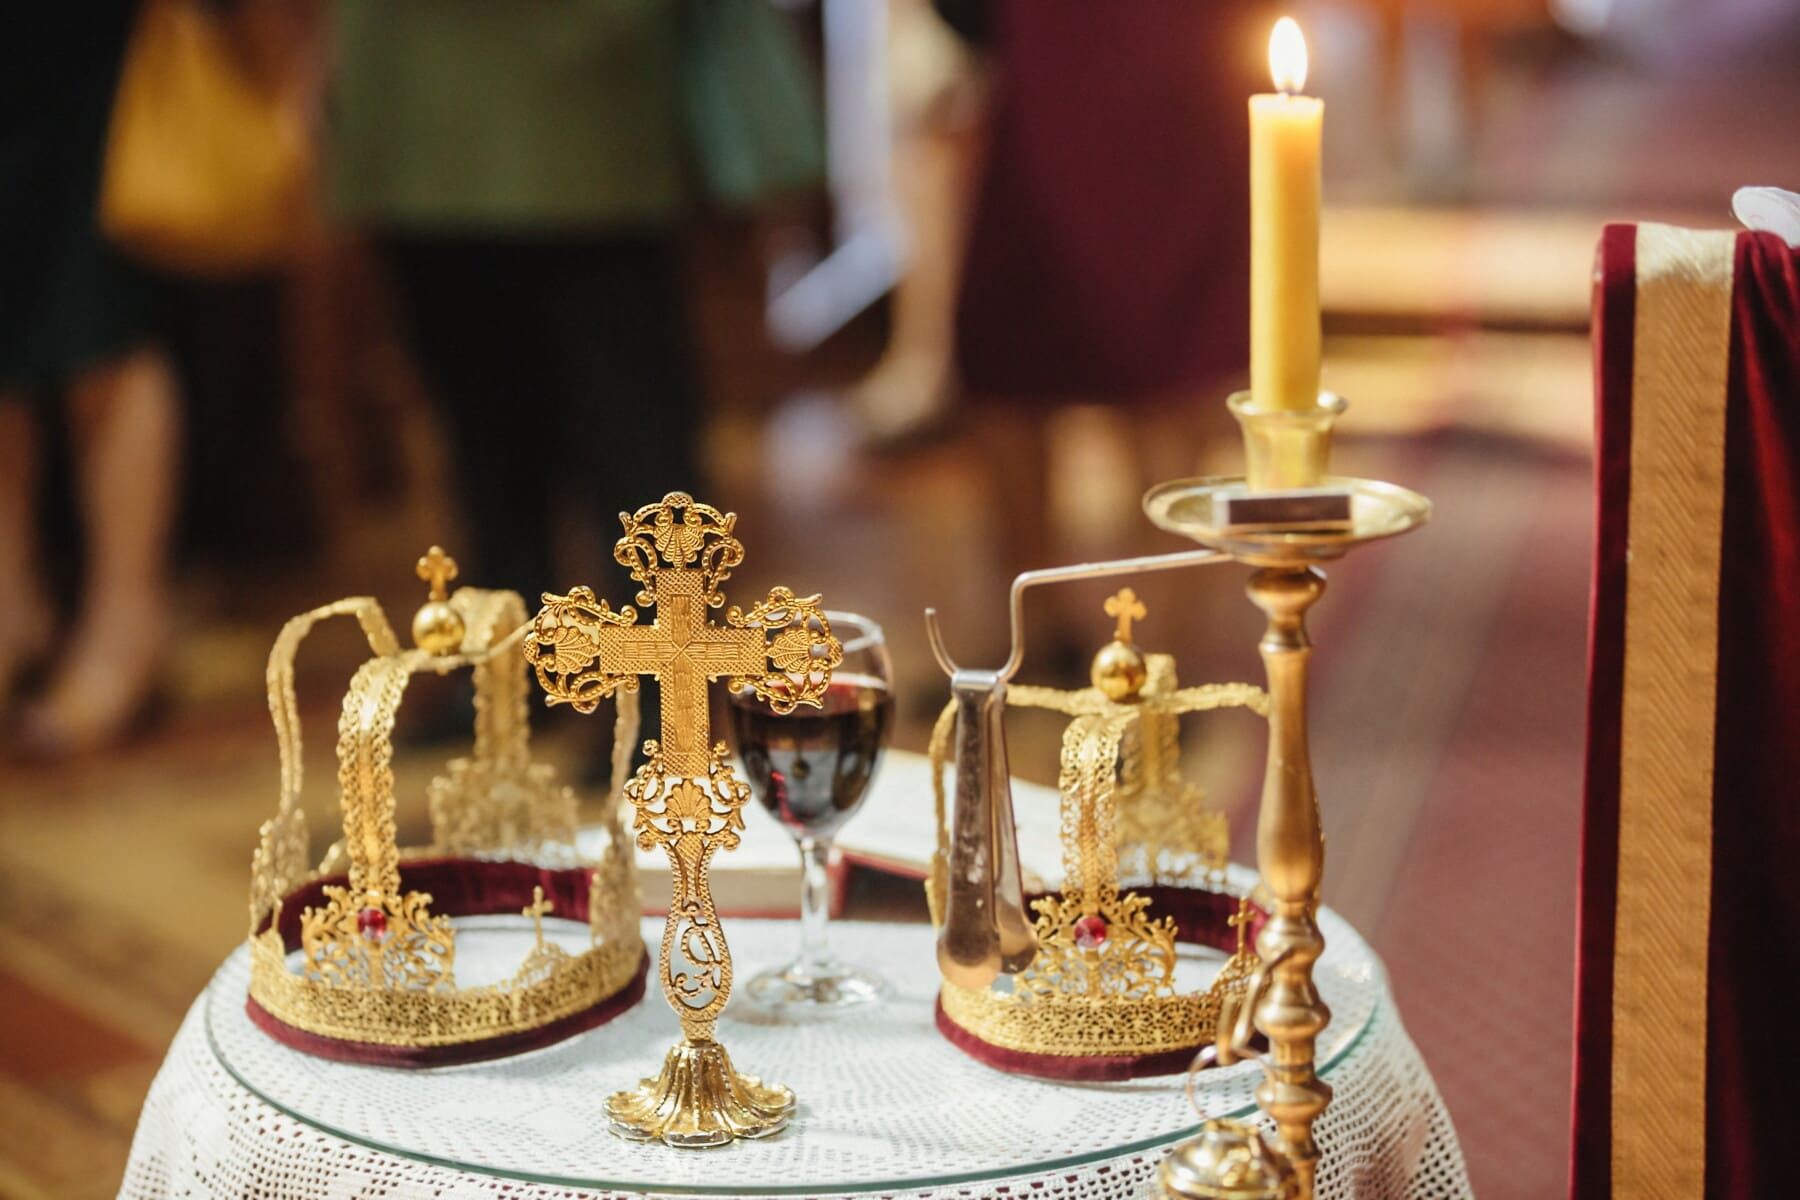 crown, gold, cross, candlestick, candle, religion, royalty, baptism, coronation, luxury